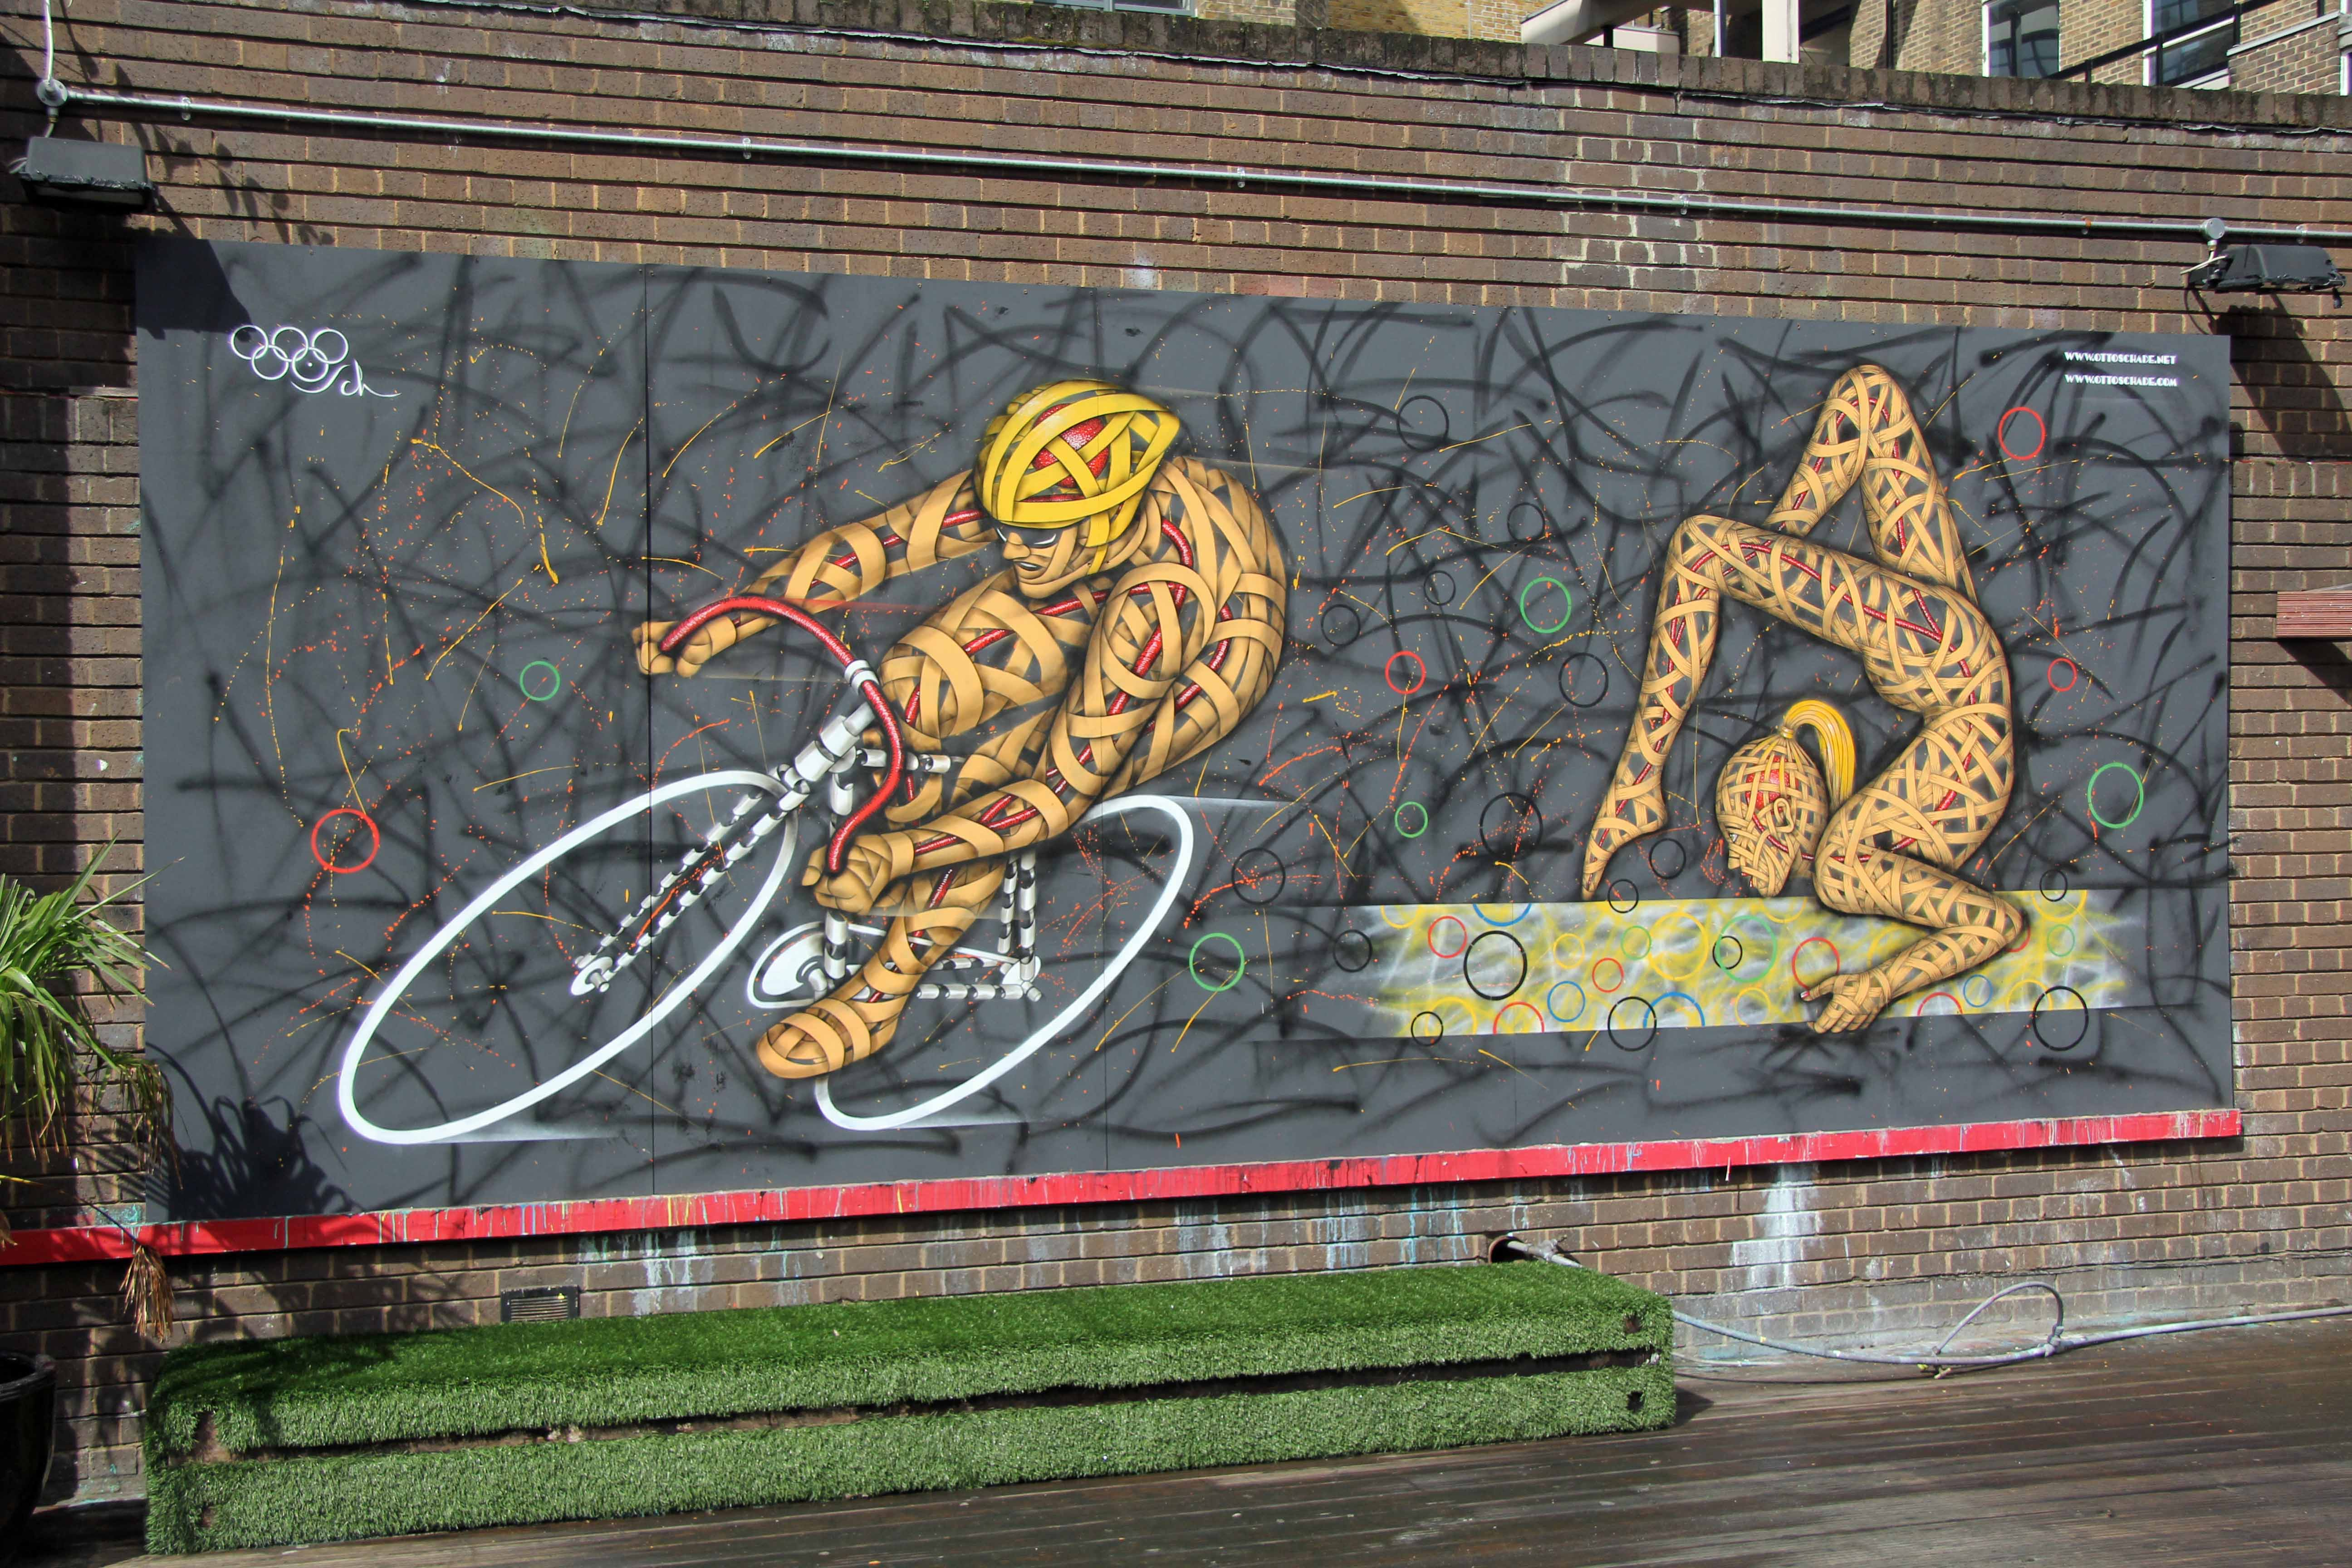 London 2012: Olympic inspired Street Art by Otto Schade in London